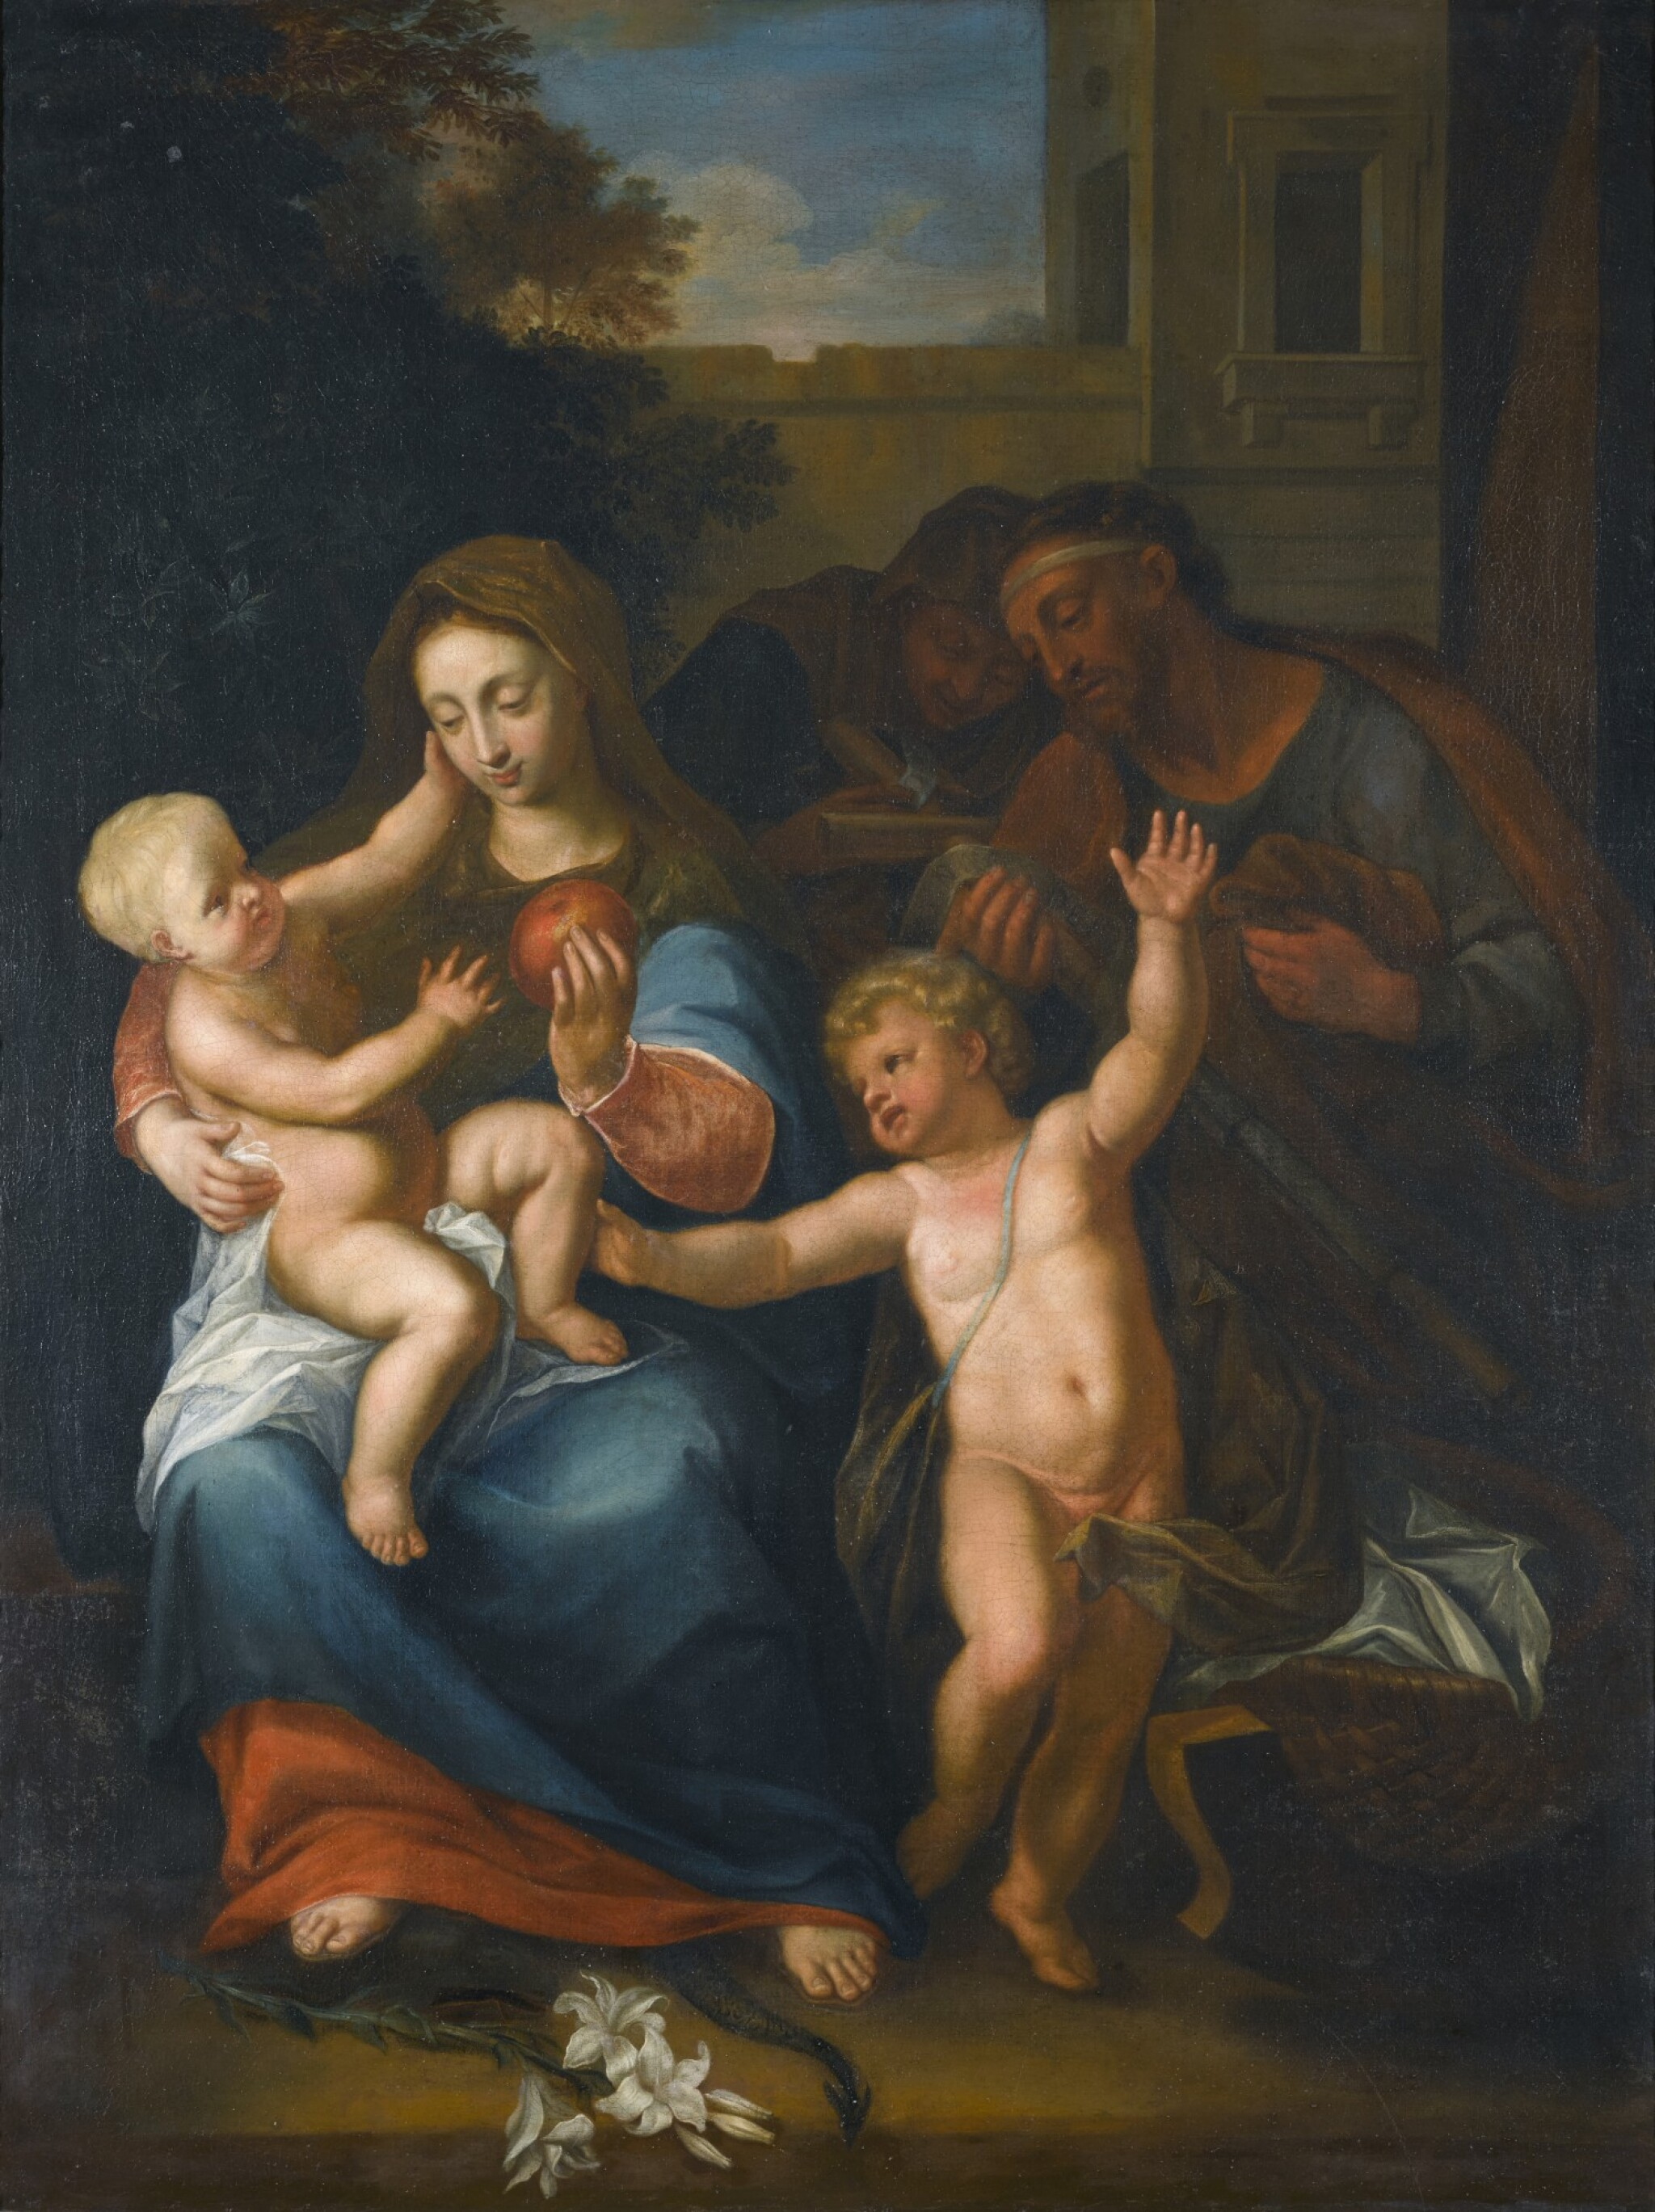 View full screen - View 1 of Lot 280. PIETER VAN DER WERFF | THE VIRGIN AND CHILD, WITH THE INFANT SAINT JOHN THE BAPTIST AND SAINT ANNE.